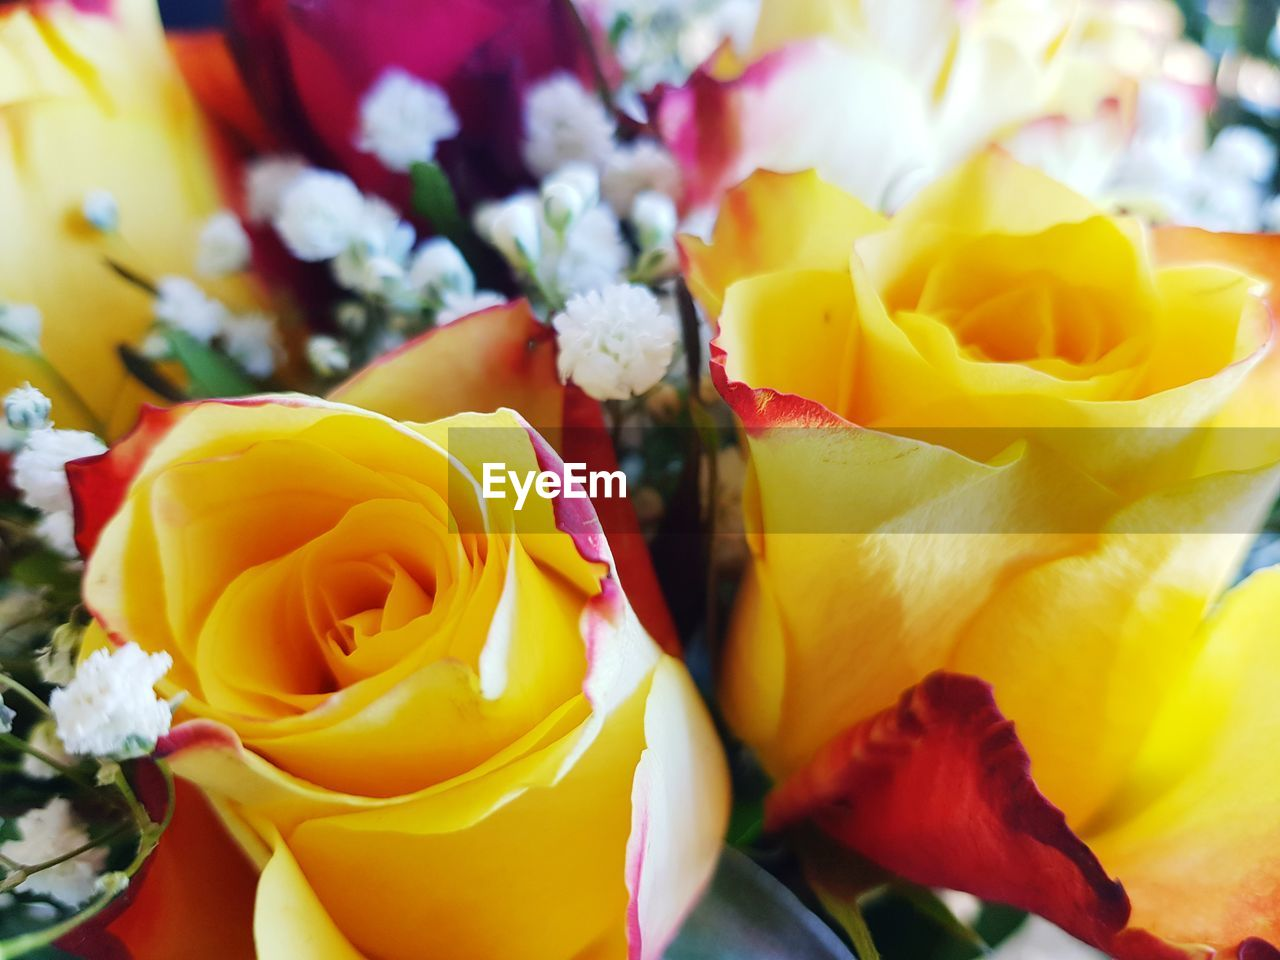 flowering plant, flower, petal, rose, plant, yellow, flower head, inflorescence, rose - flower, freshness, beauty in nature, vulnerability, fragility, close-up, nature, bouquet, flower arrangement, no people, multi colored, full frame, outdoors, softness